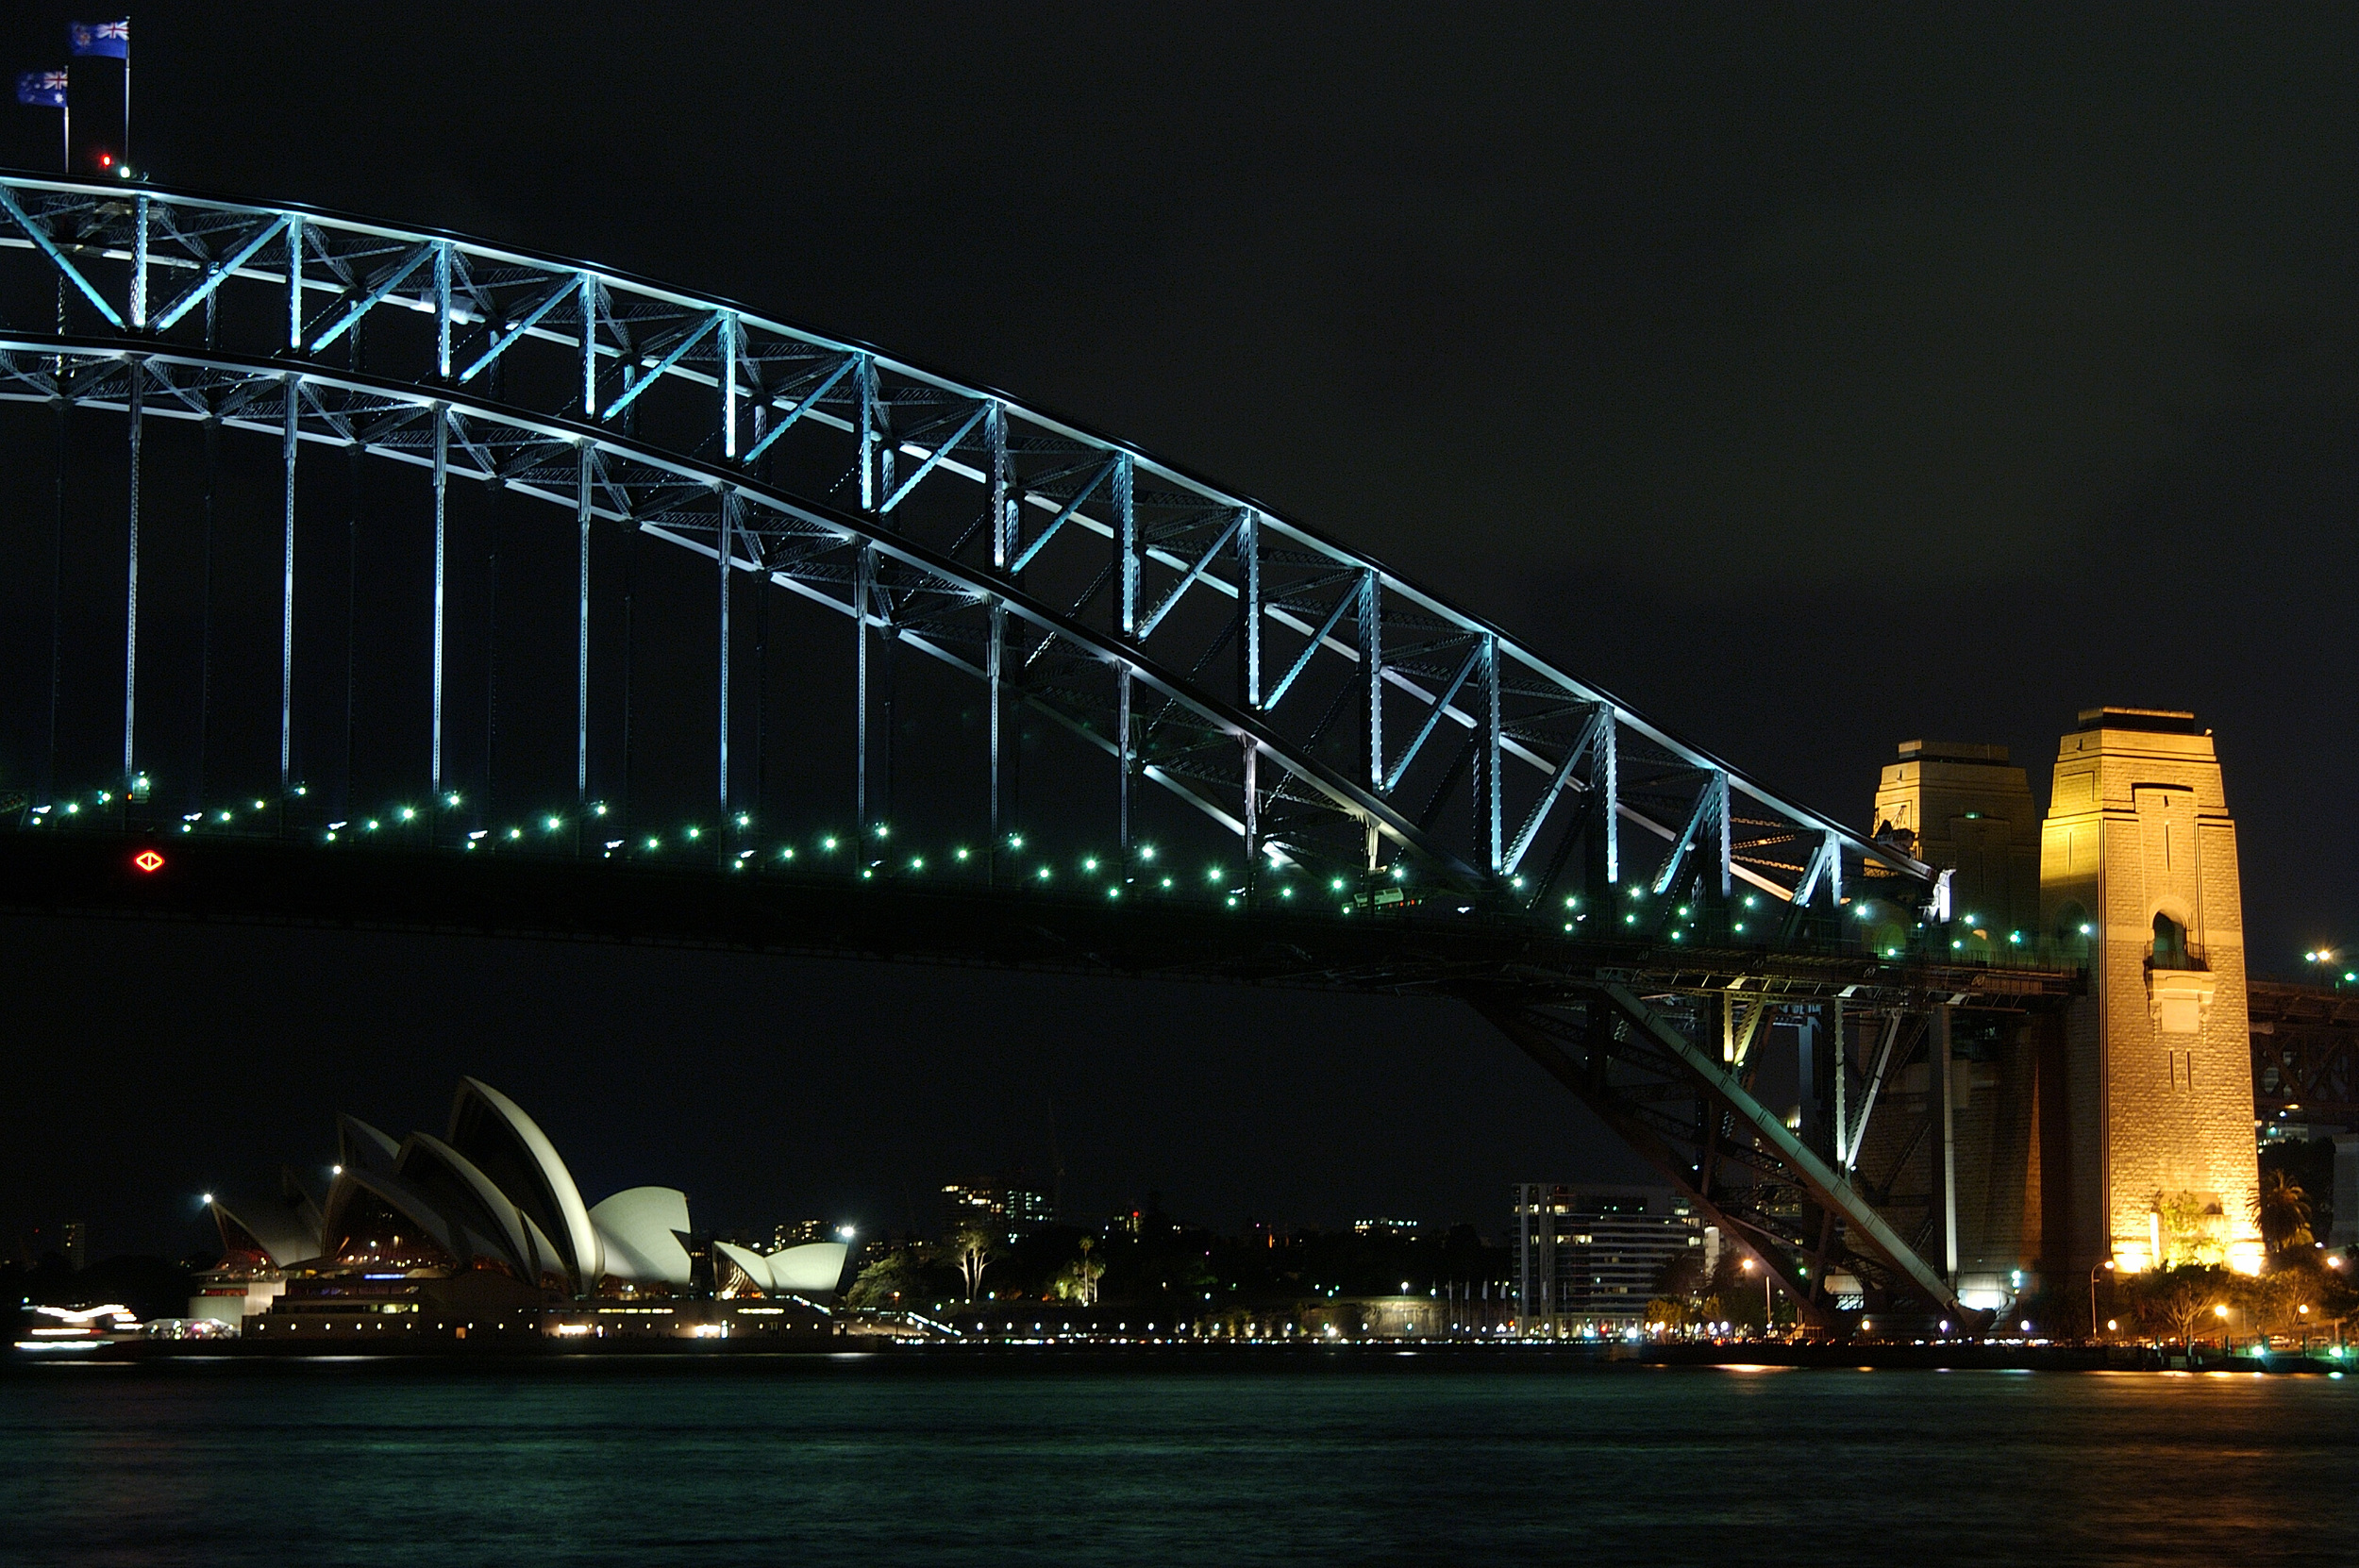 """The """"post card"""" shot- Opera house and Sydney Harbour Bridge in the same shot at night!"""